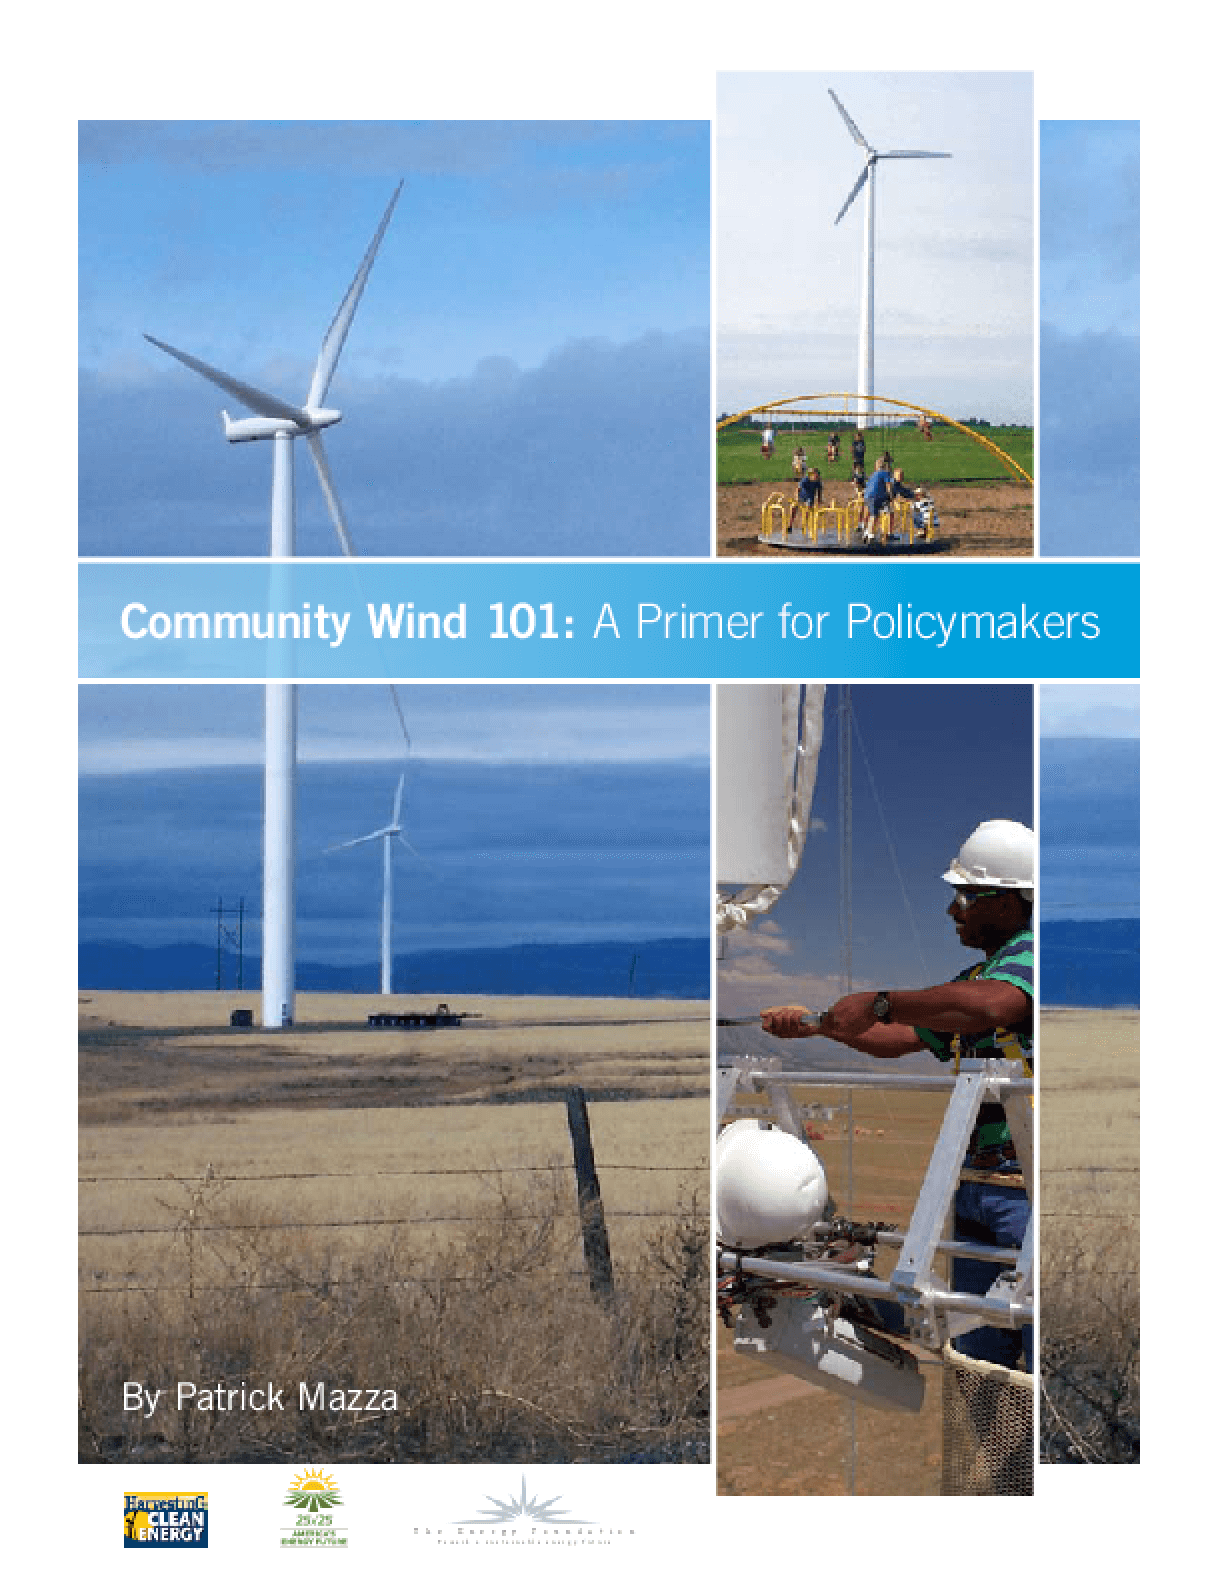 Community Wind 101: A Primer for Policymakers